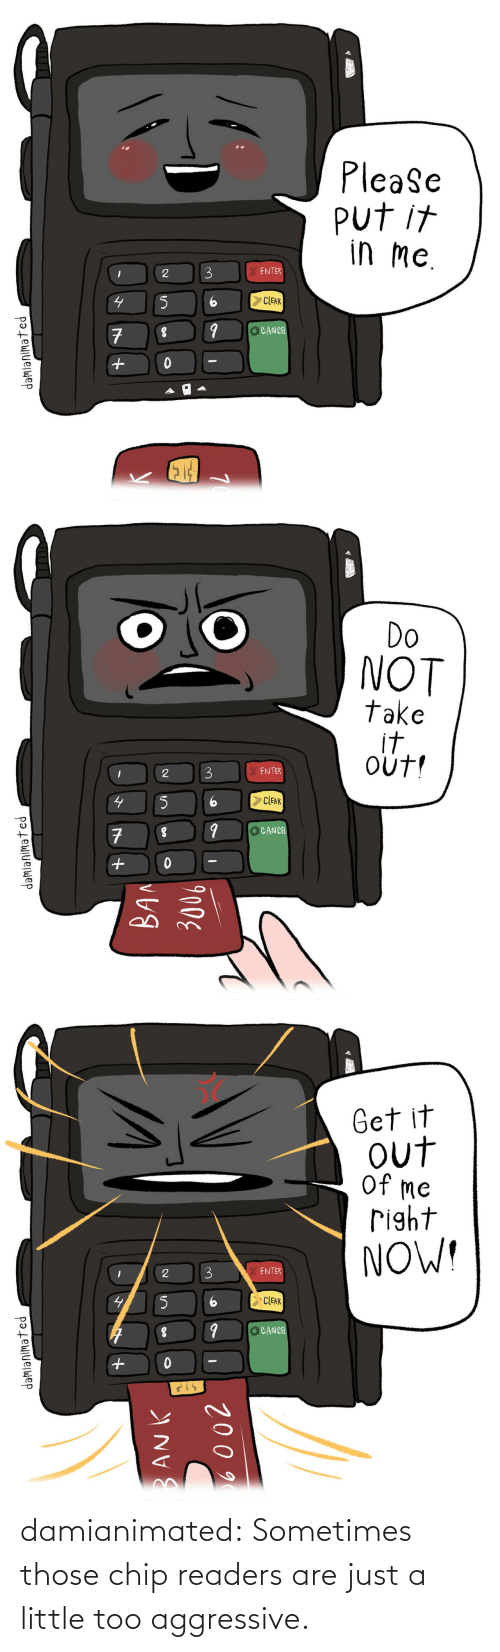 Aggressive: damianimated: Sometimes those chip readers are just a little too aggressive.